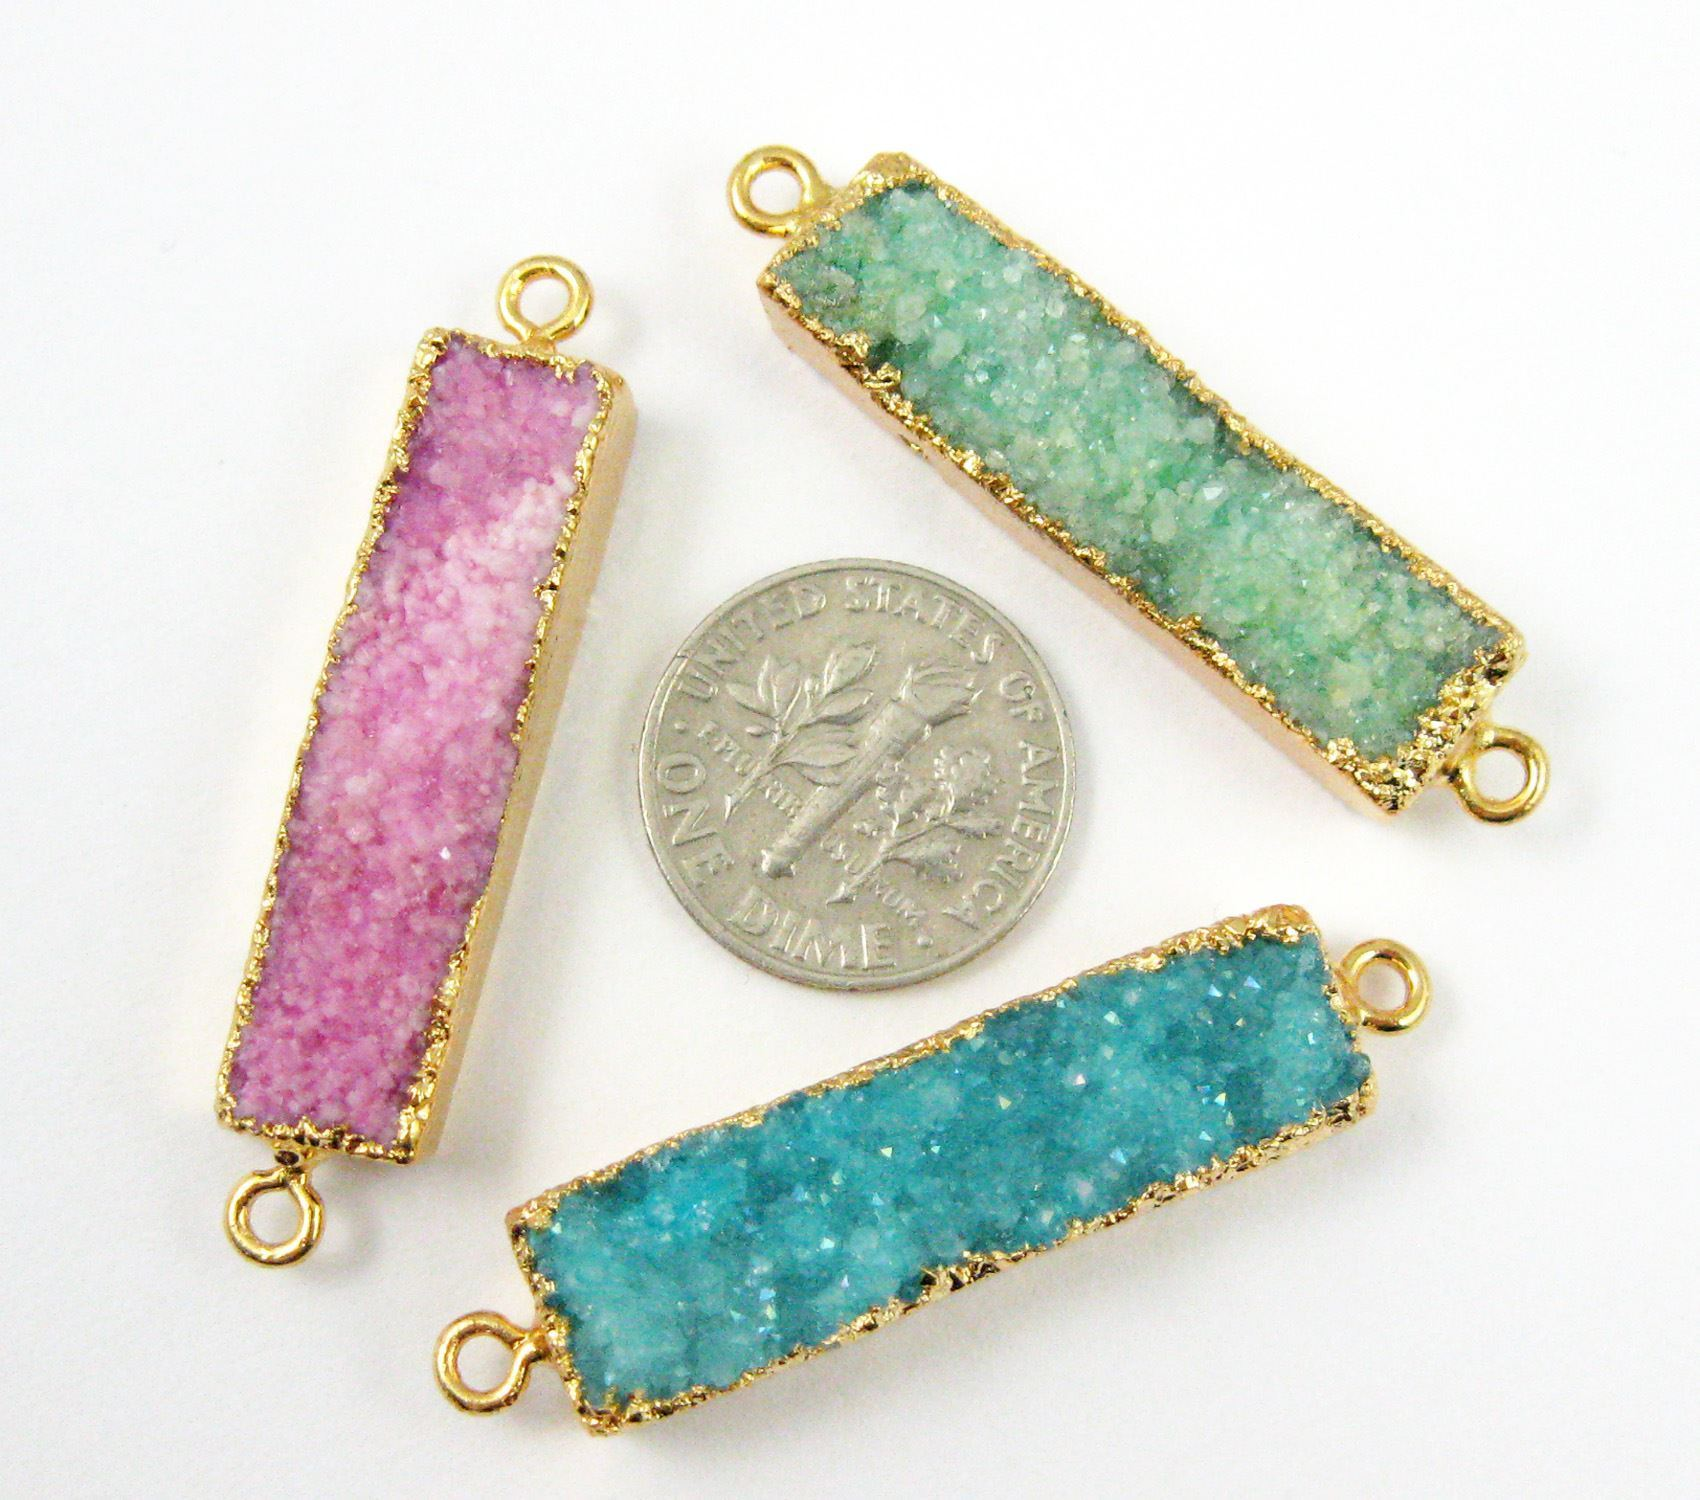 Druzy Gemstone Bar Pendant, Natural Agate Gold Dipped Connector Pendant, Side Rings - Pink - 35mm